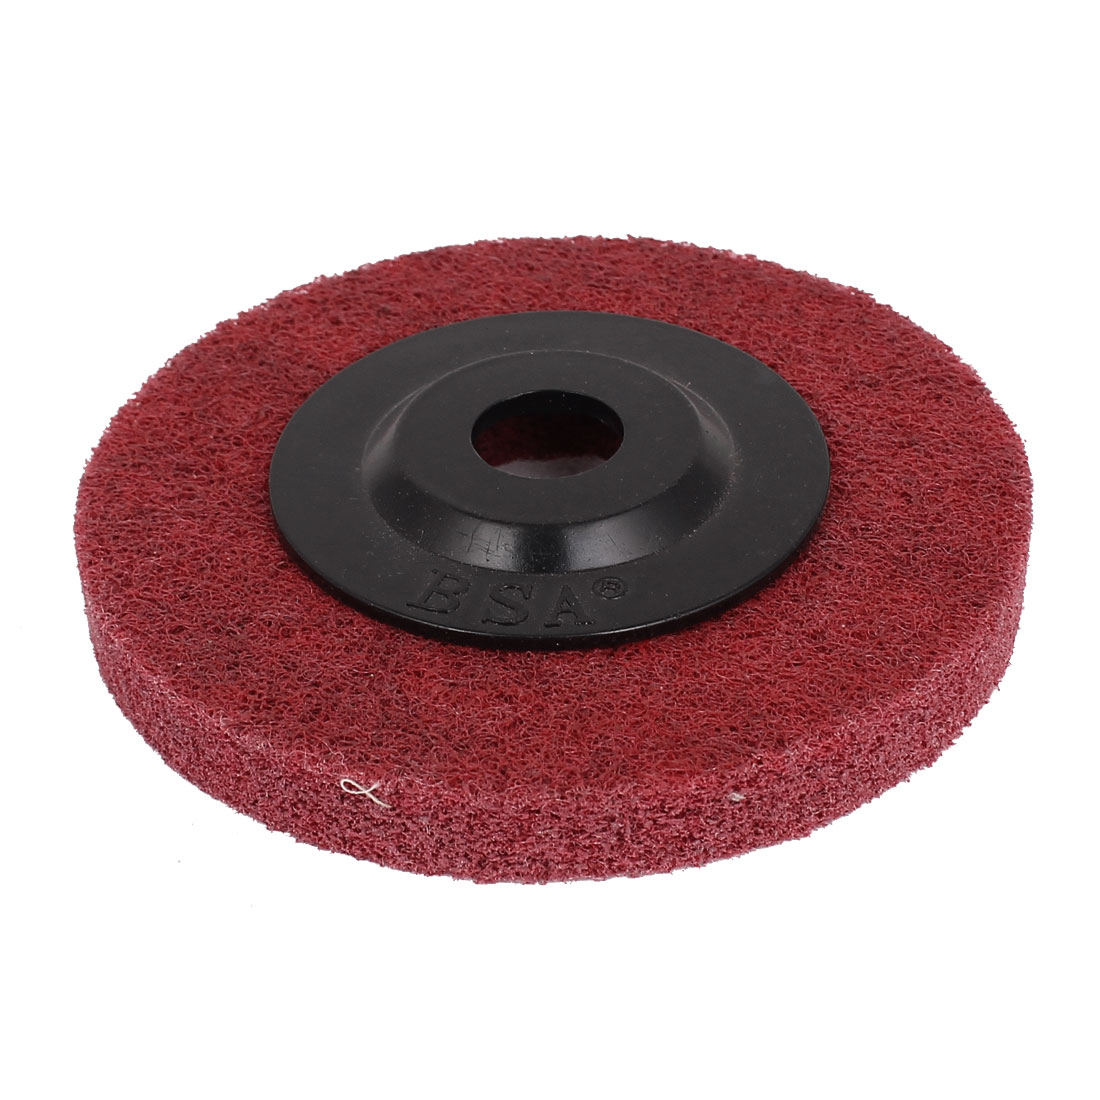 100mmx16mmx12mm Nylon Polishing Grinding Wheel Red for Angle Grinder